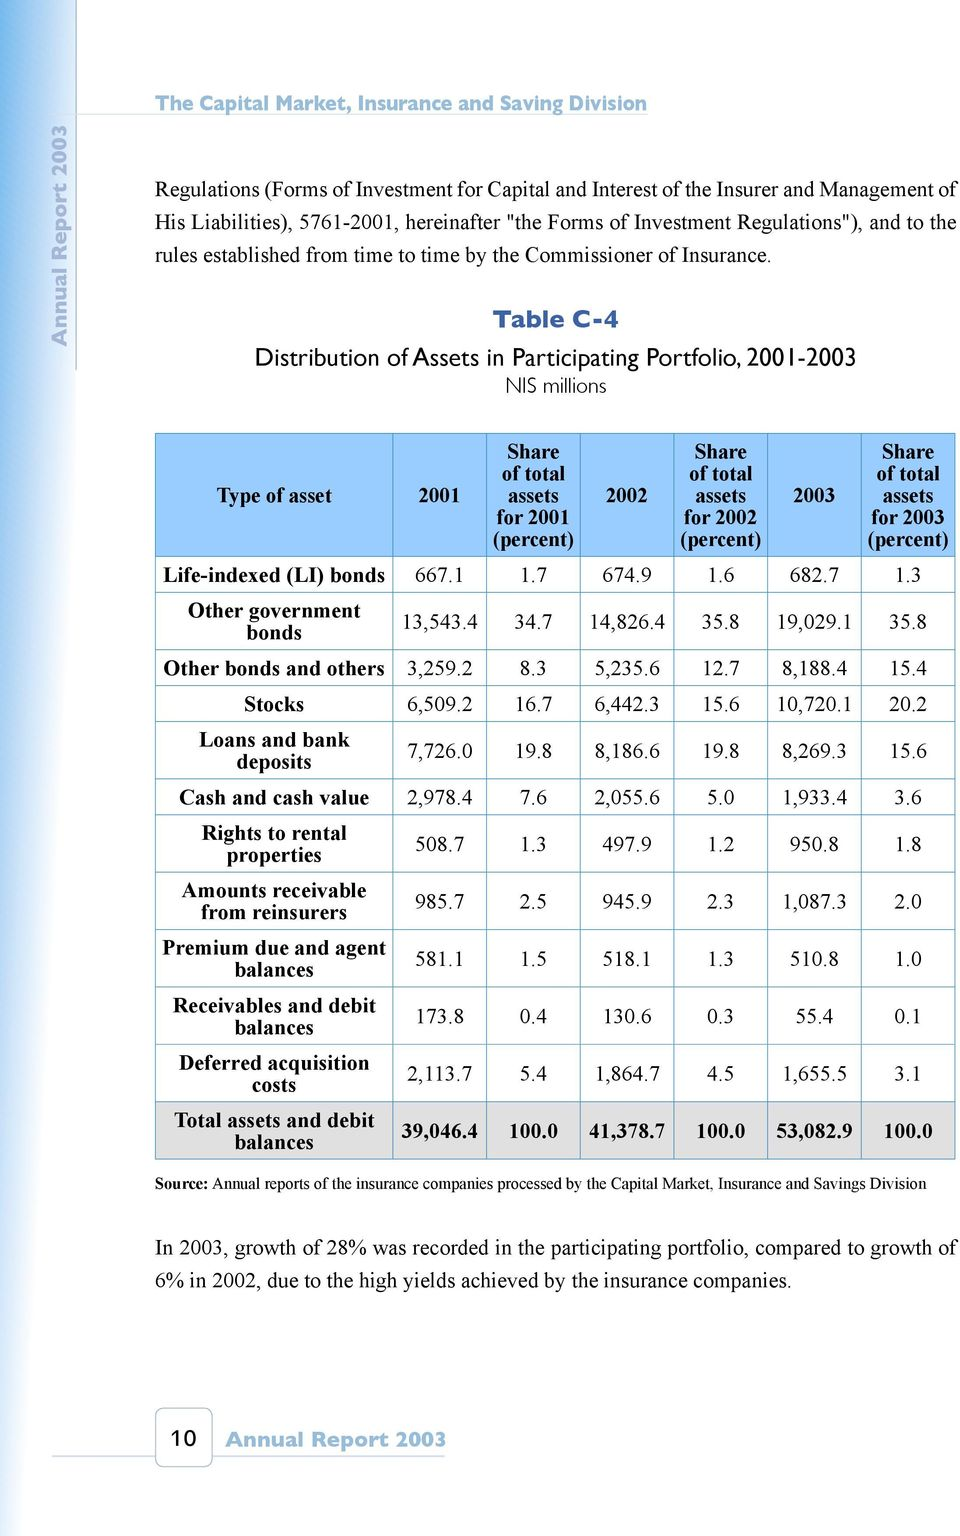 Table C-4 Distribution of Assets in Participating Portfolio, 2001-2003 NIS millions Type of asset 2001 Share of total assets for 2001 (percent) 2002 Share of total assets for 2002 (percent) 2003